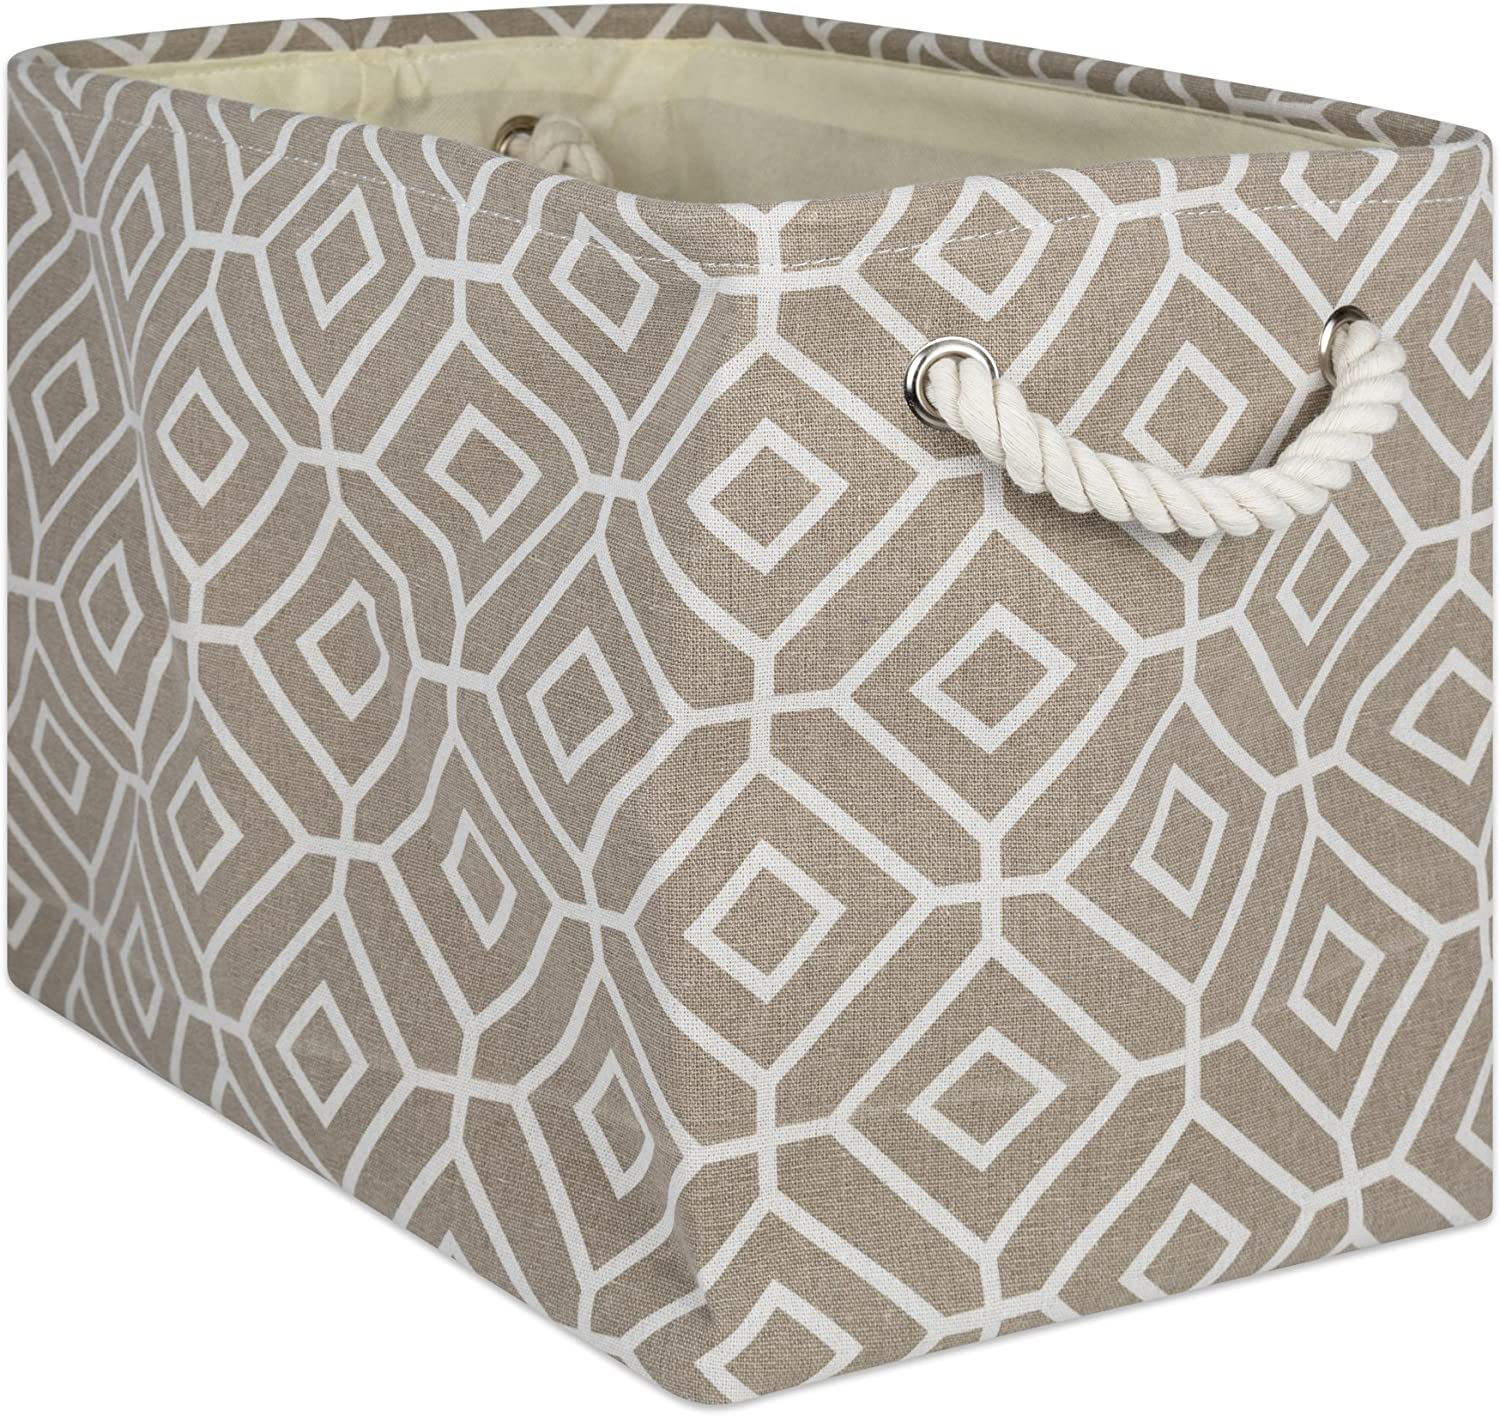 DII CAMZ10010Collapsible Polyester Storage Basket or Bin with Durable Cotton Handles, Home Organizer Solution for Office, Bedroom Closet, Toys, Laundry, Rectangle, Stone